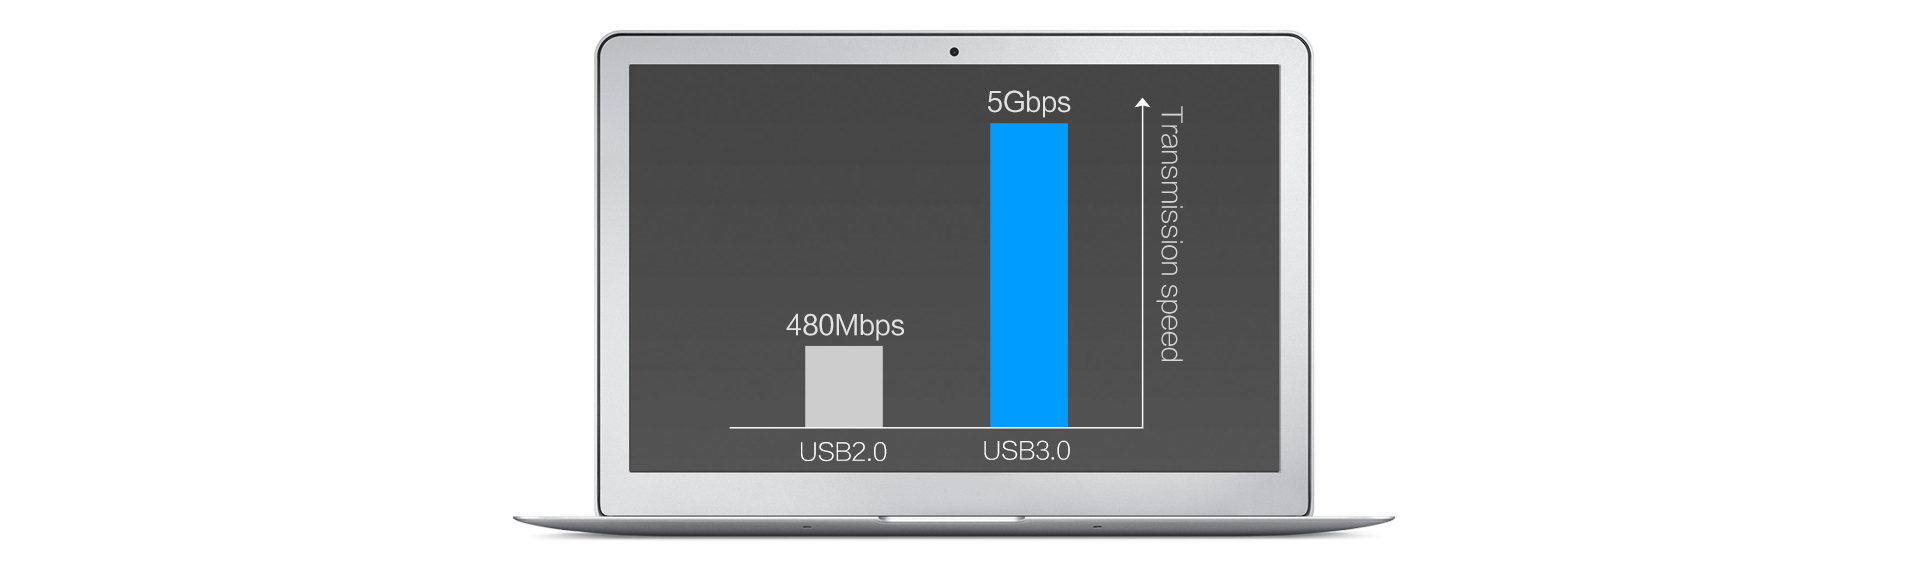 USB 3.0 data transfer rate up to 5 Gbps